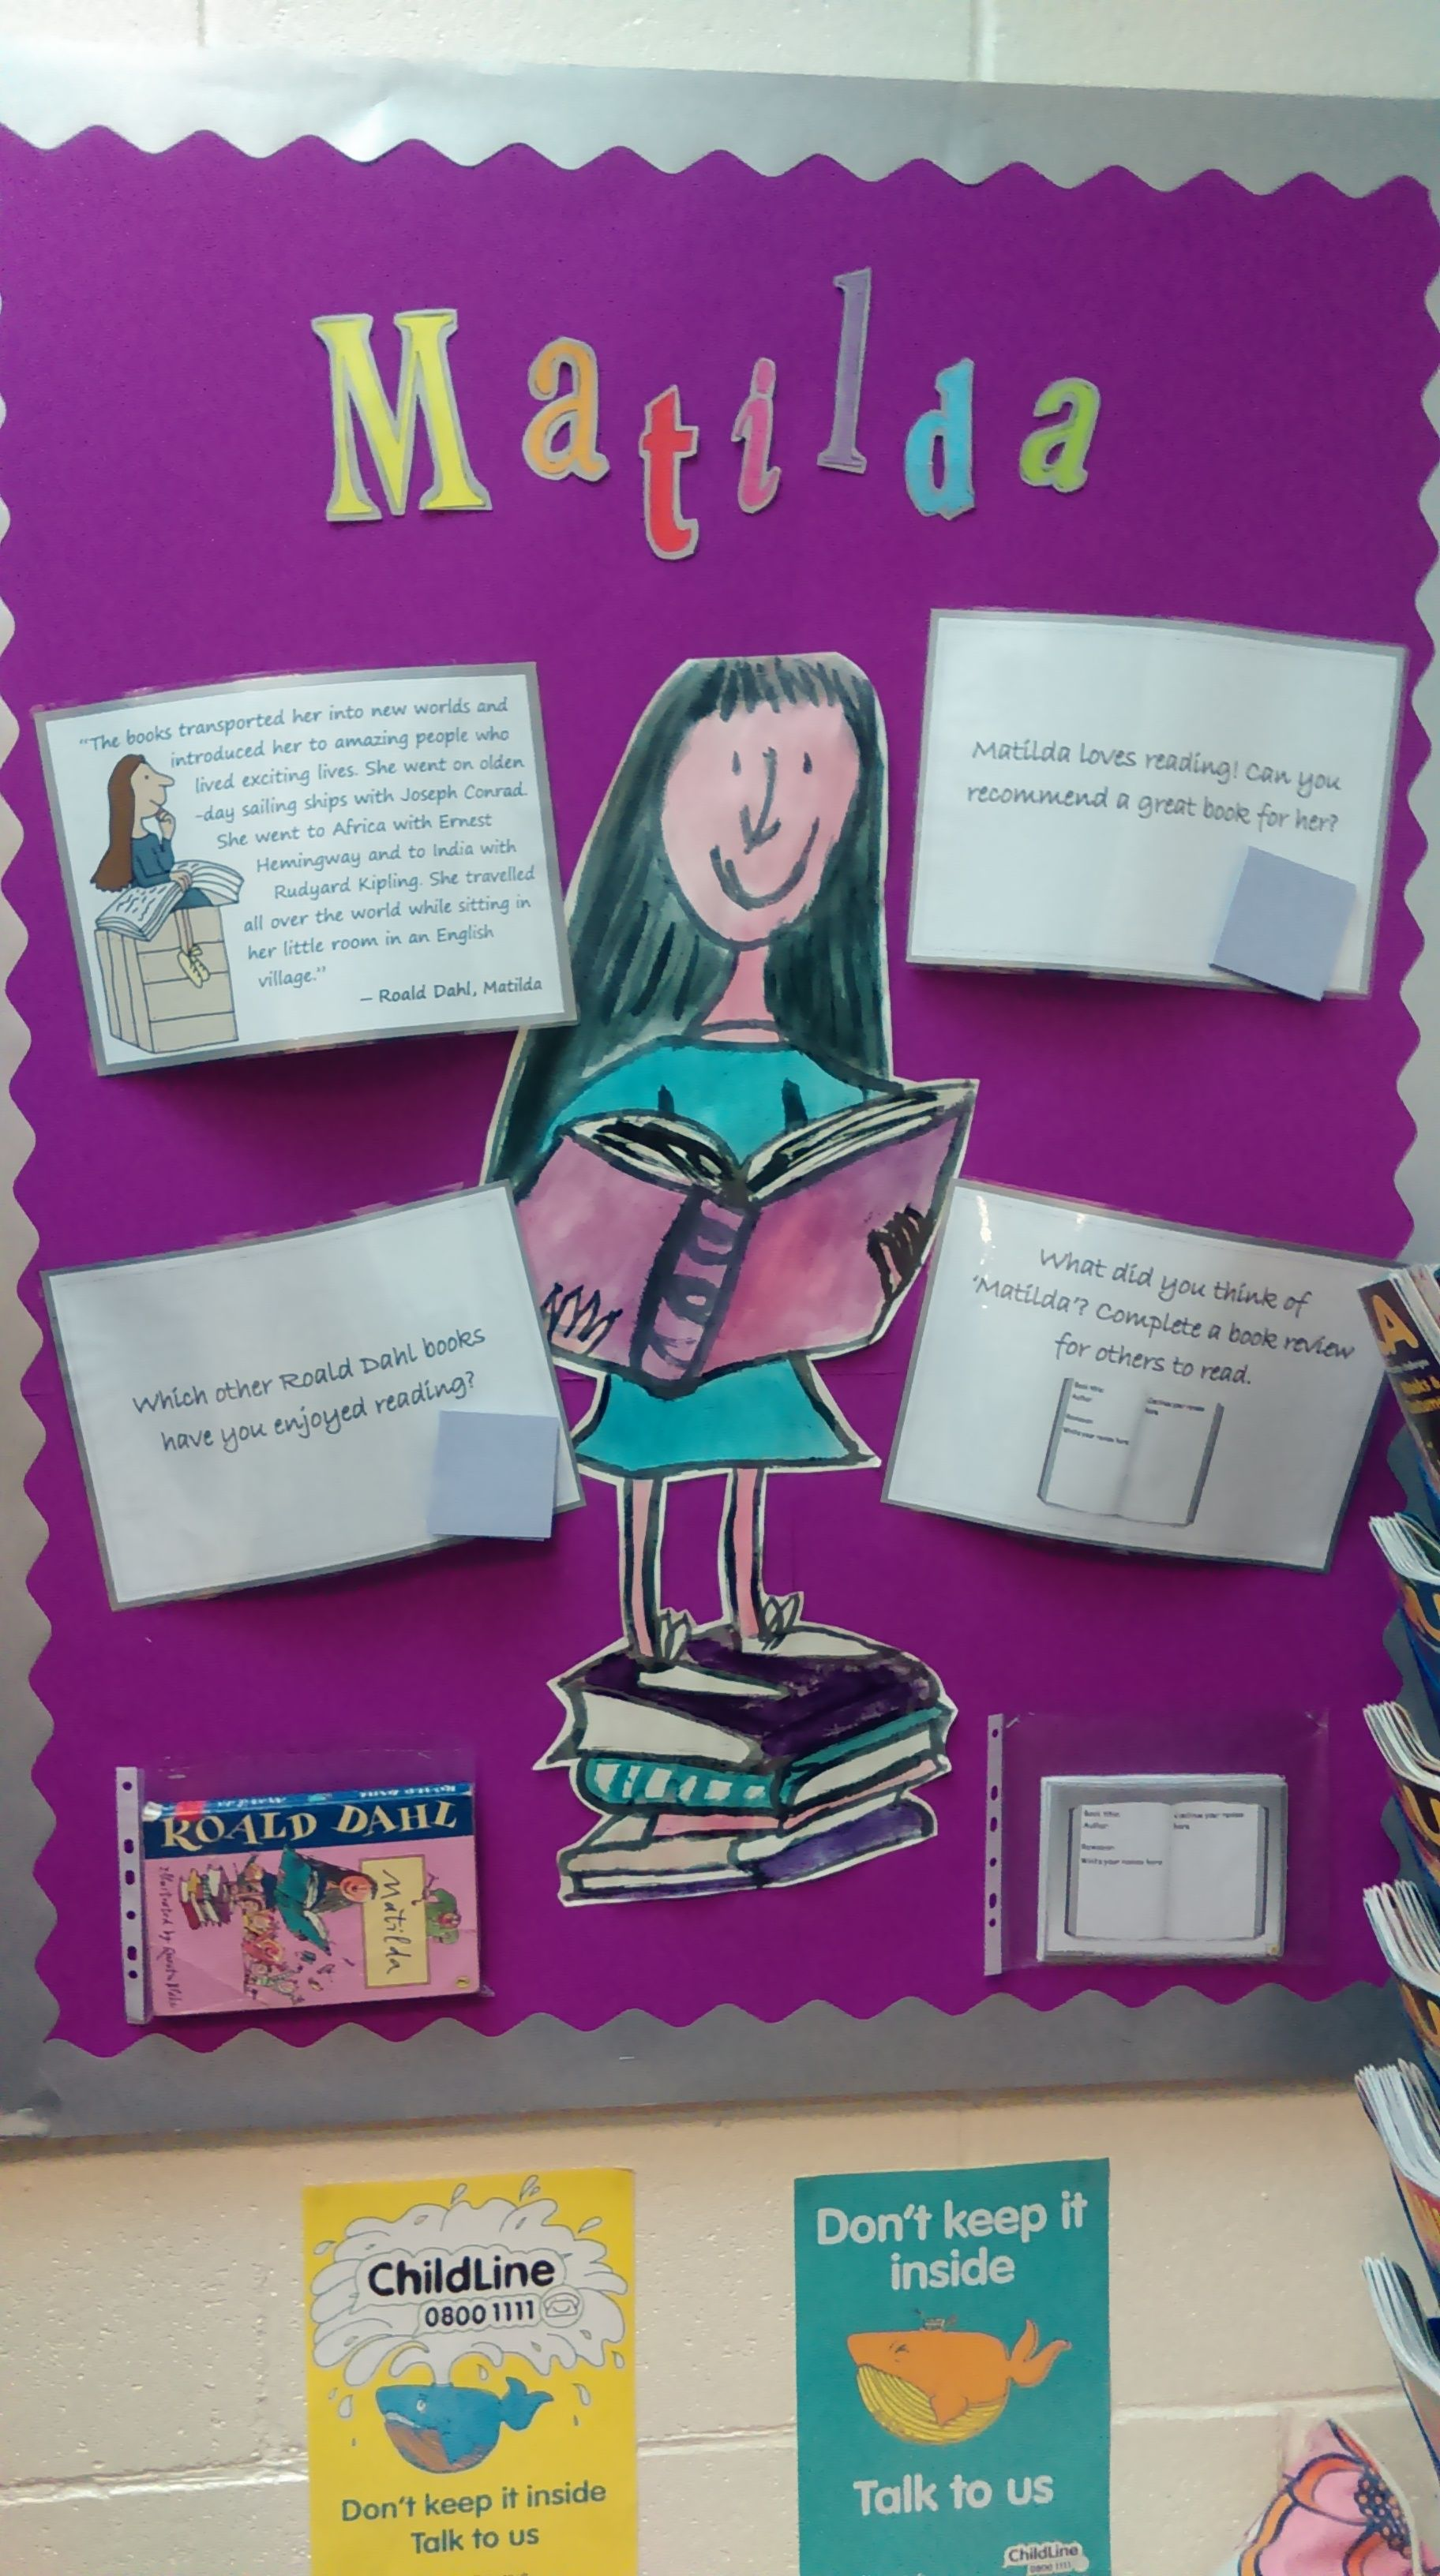 Library Display Based On Matilda By Roald Dahl Aimed At